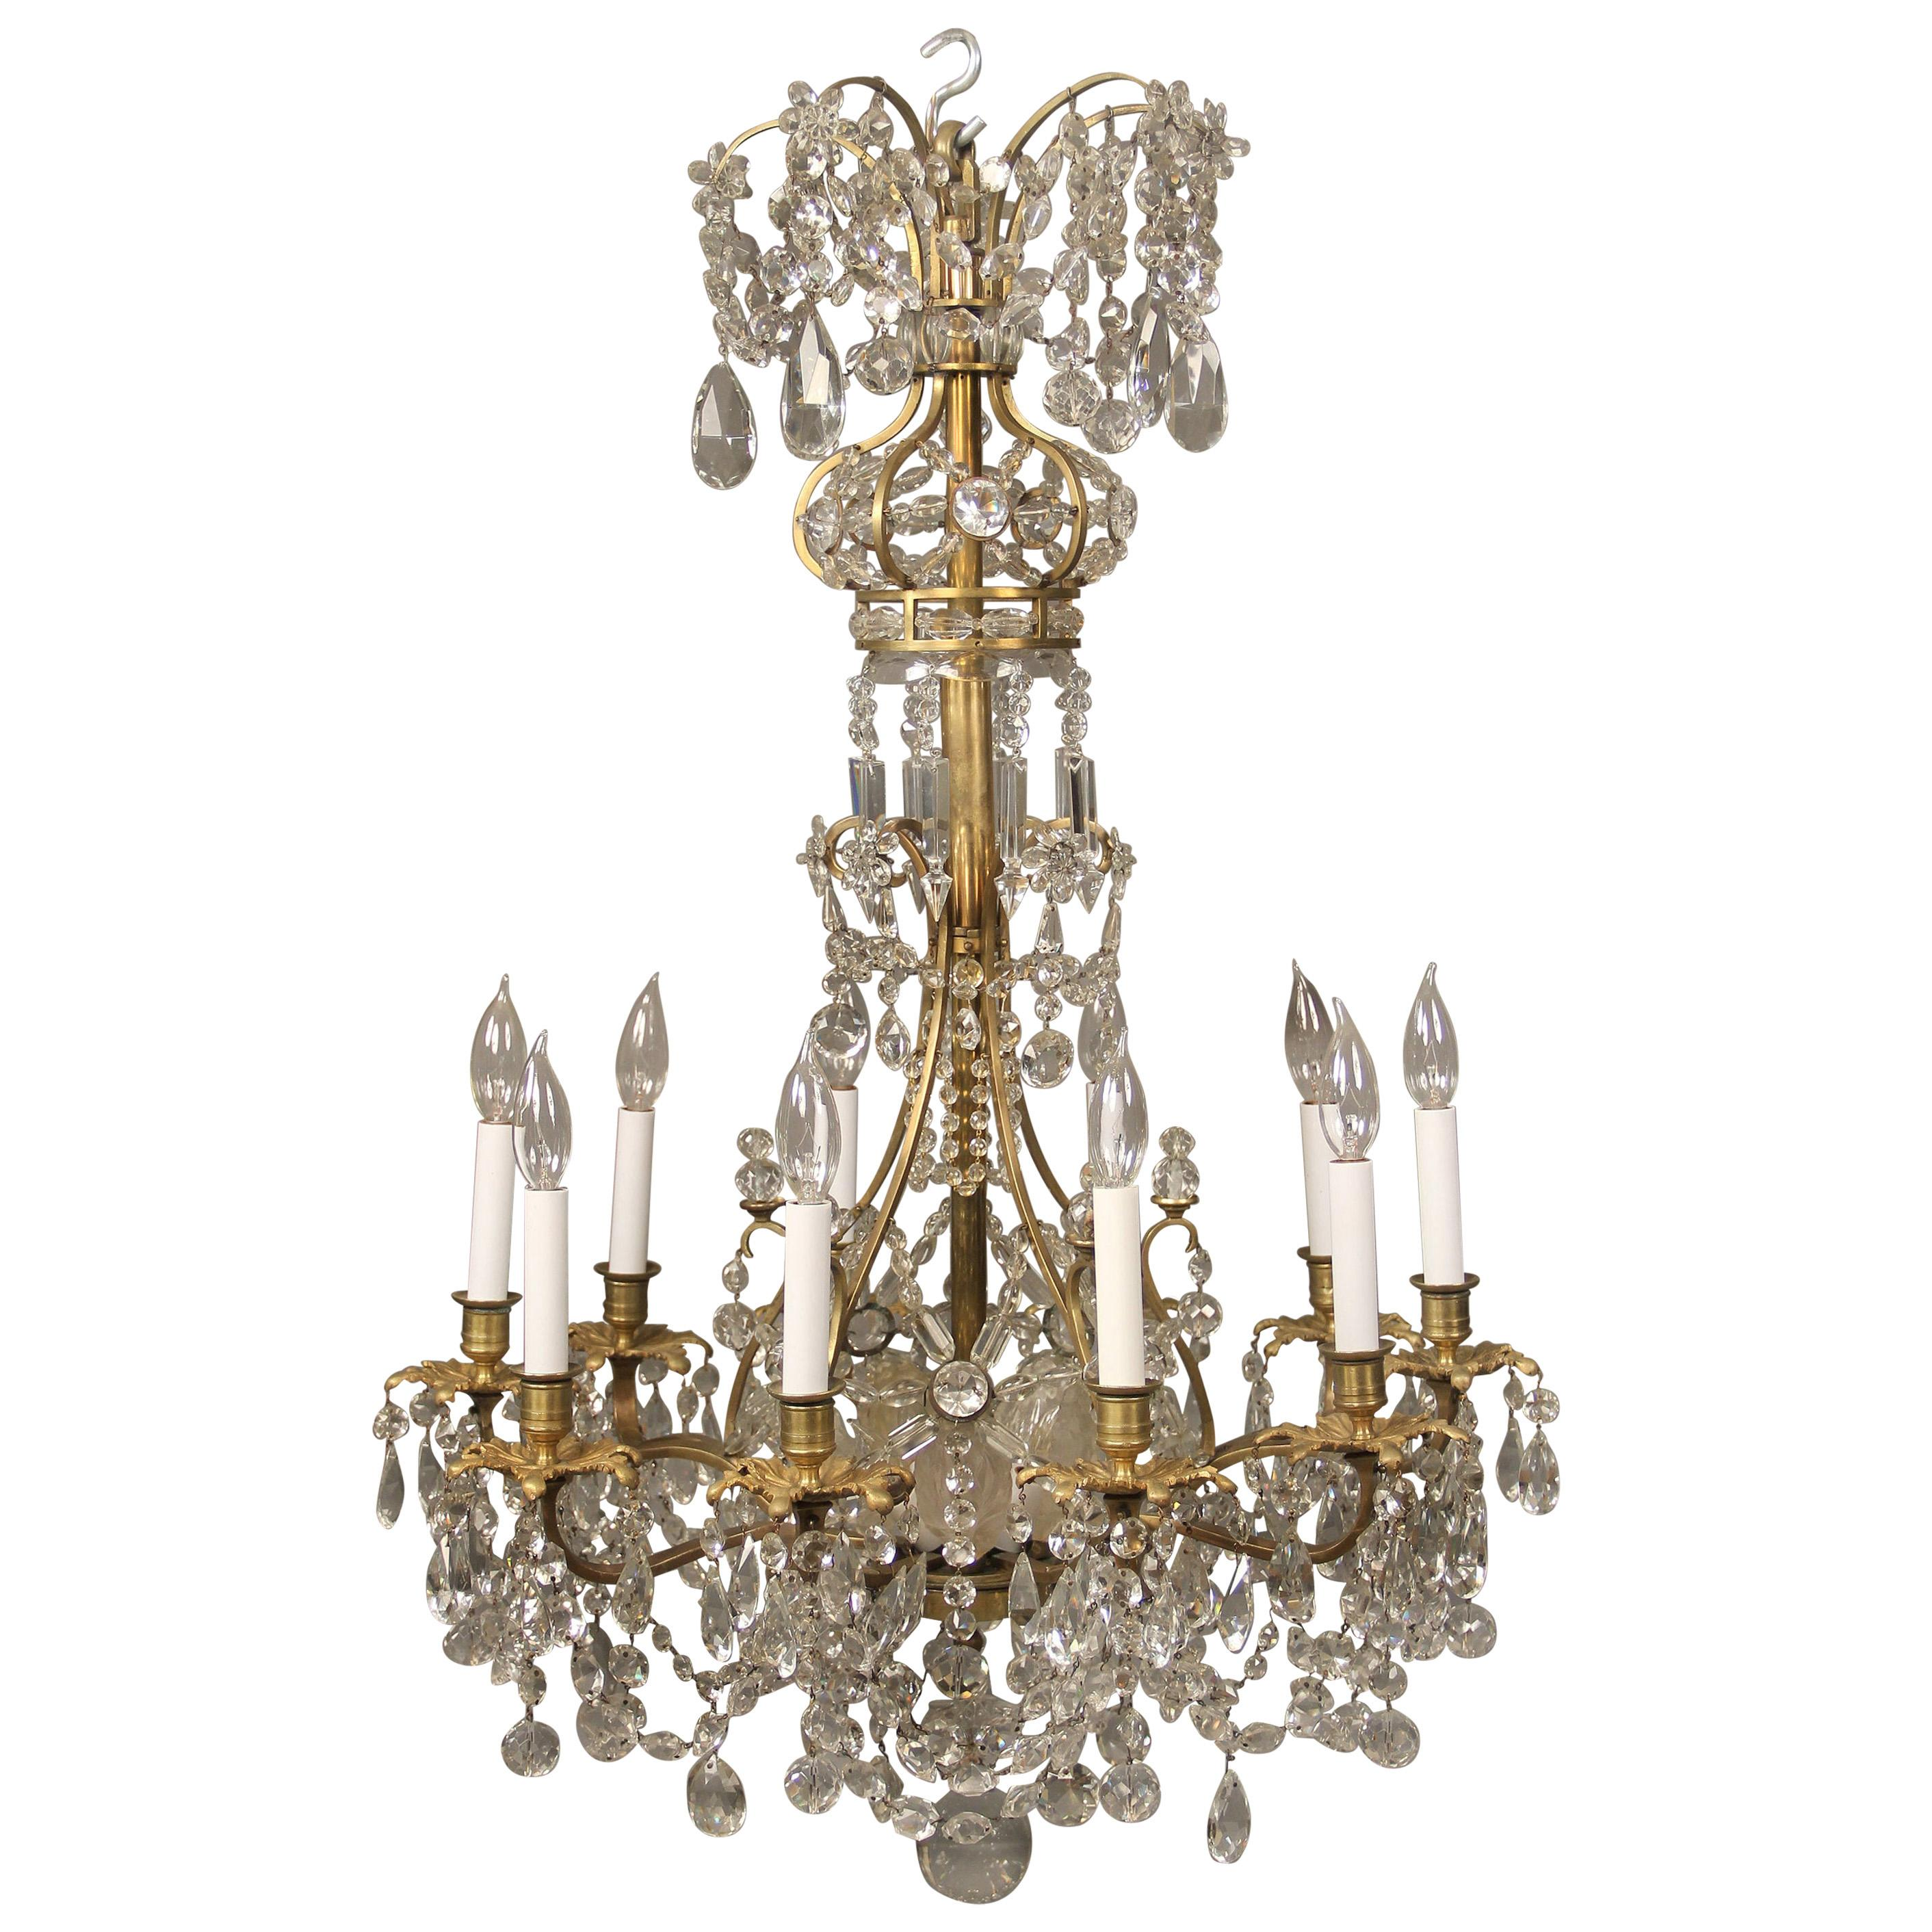 Lovely Late 19th Century Gilt Bronze and Baccarat Crystal Chandelier